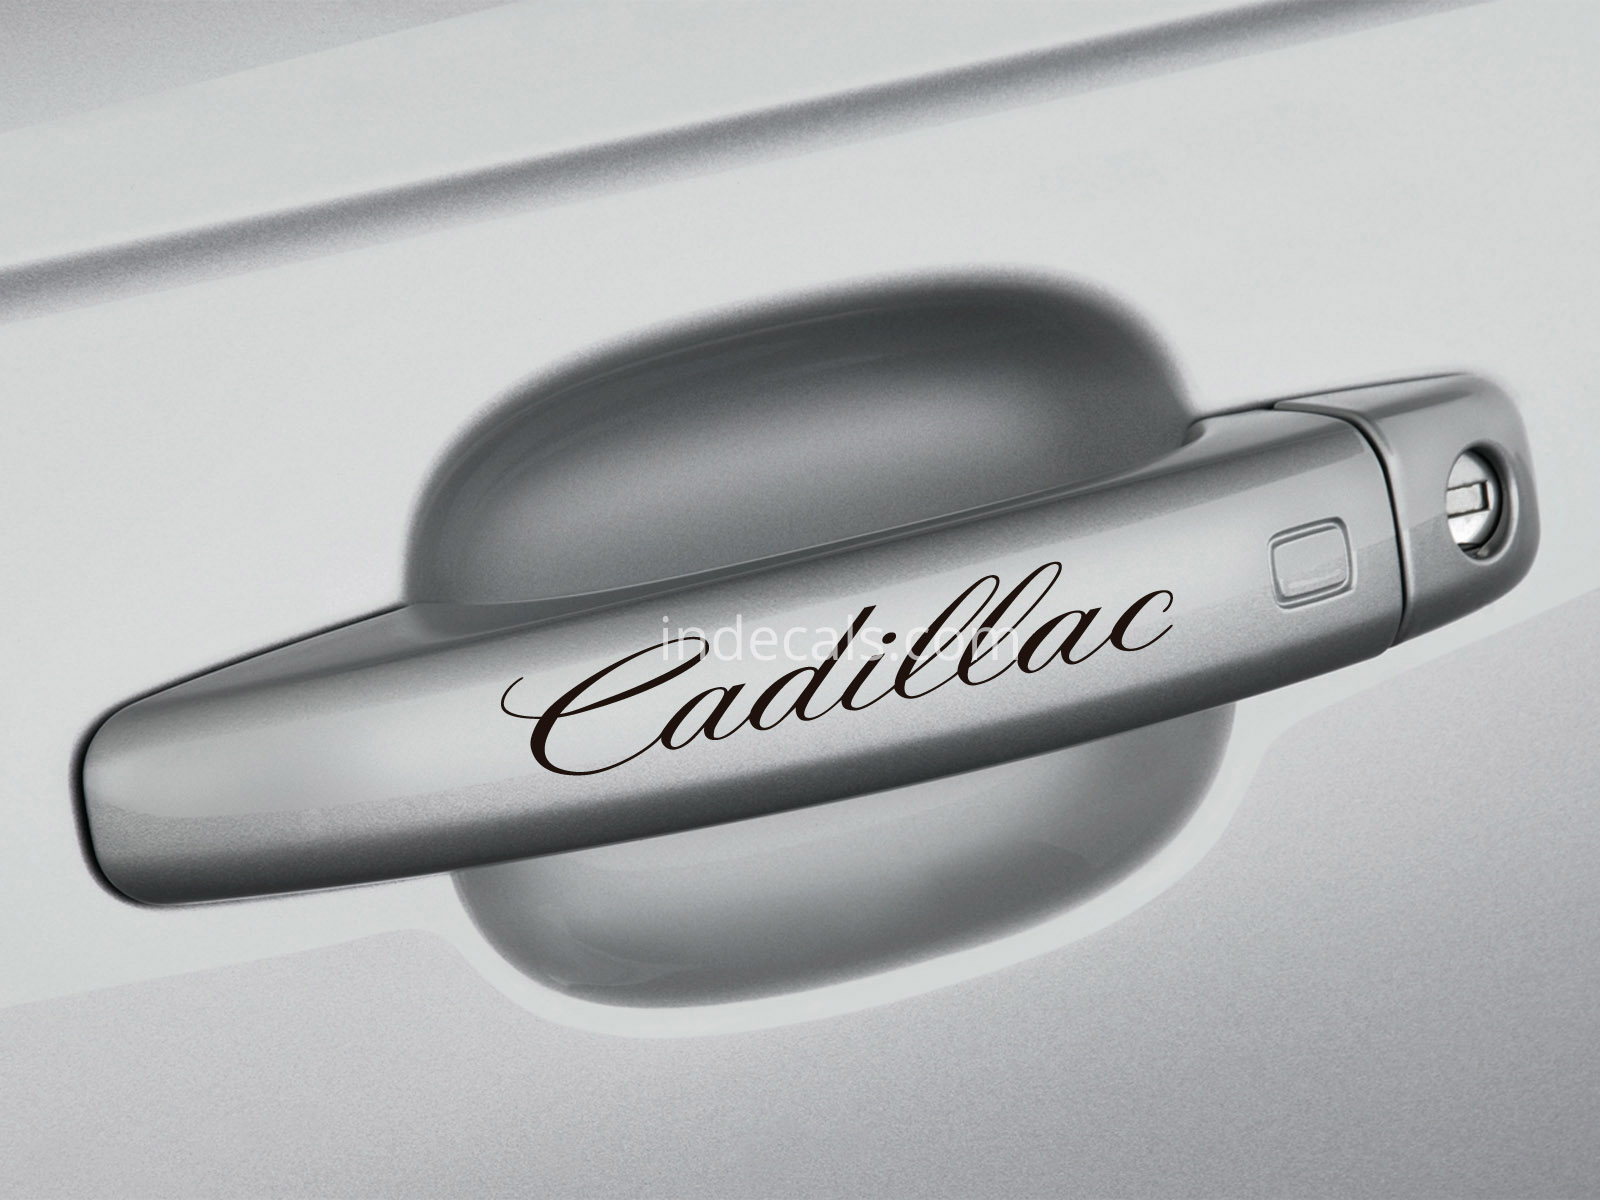 6 x Cadillac Stickers for Door Handles - Black